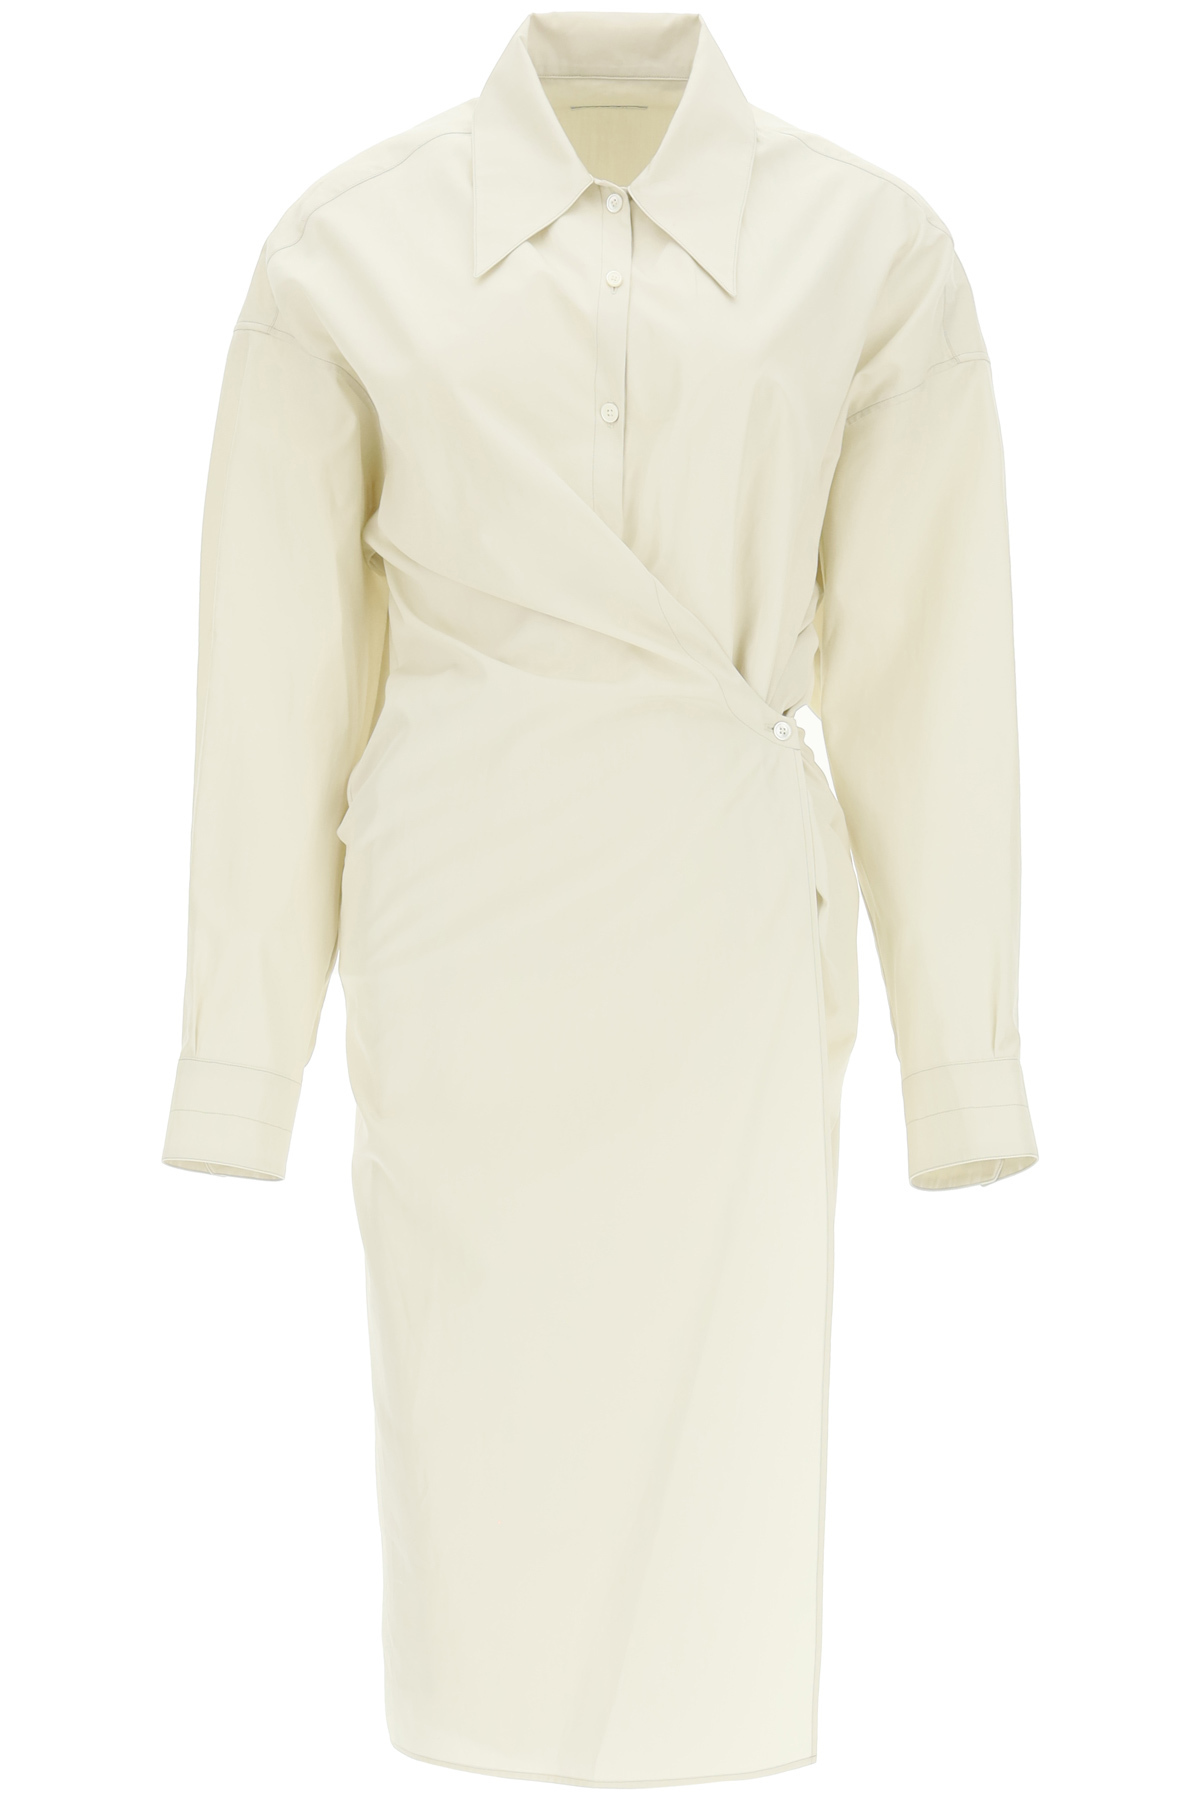 Lemaire DRESS WITH ASYMMETRIC CLOSURE